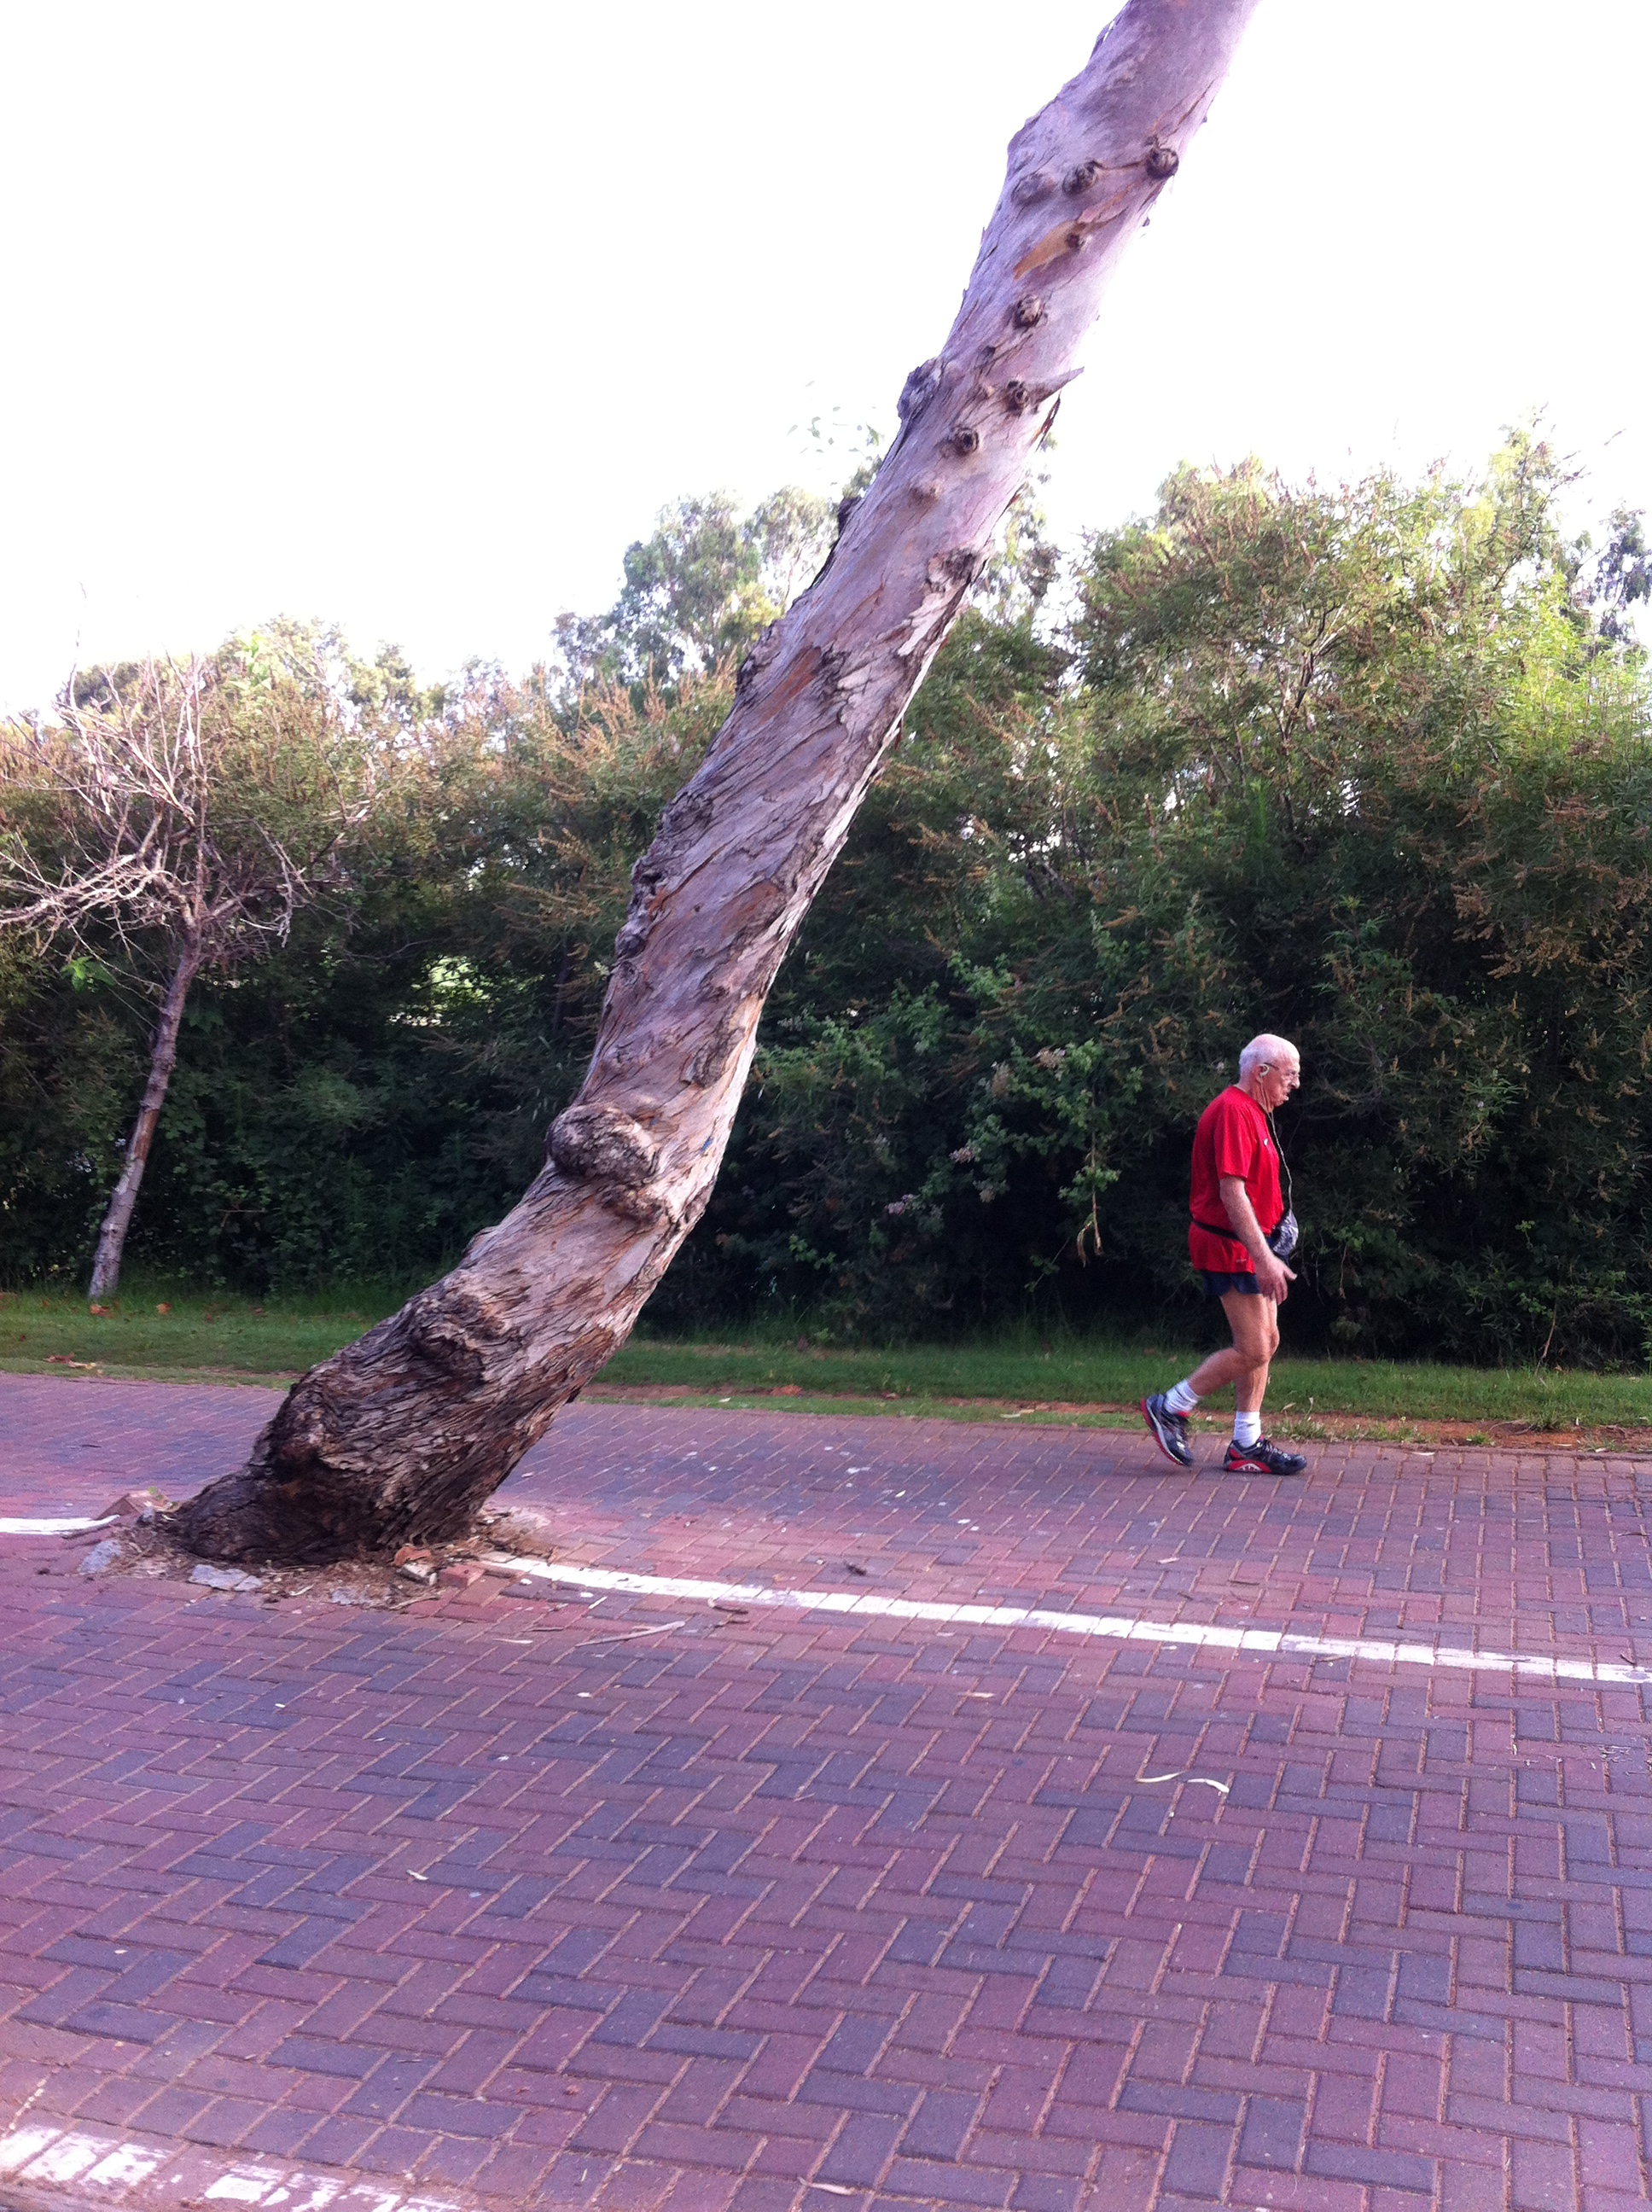 a tree bent at perilous angle